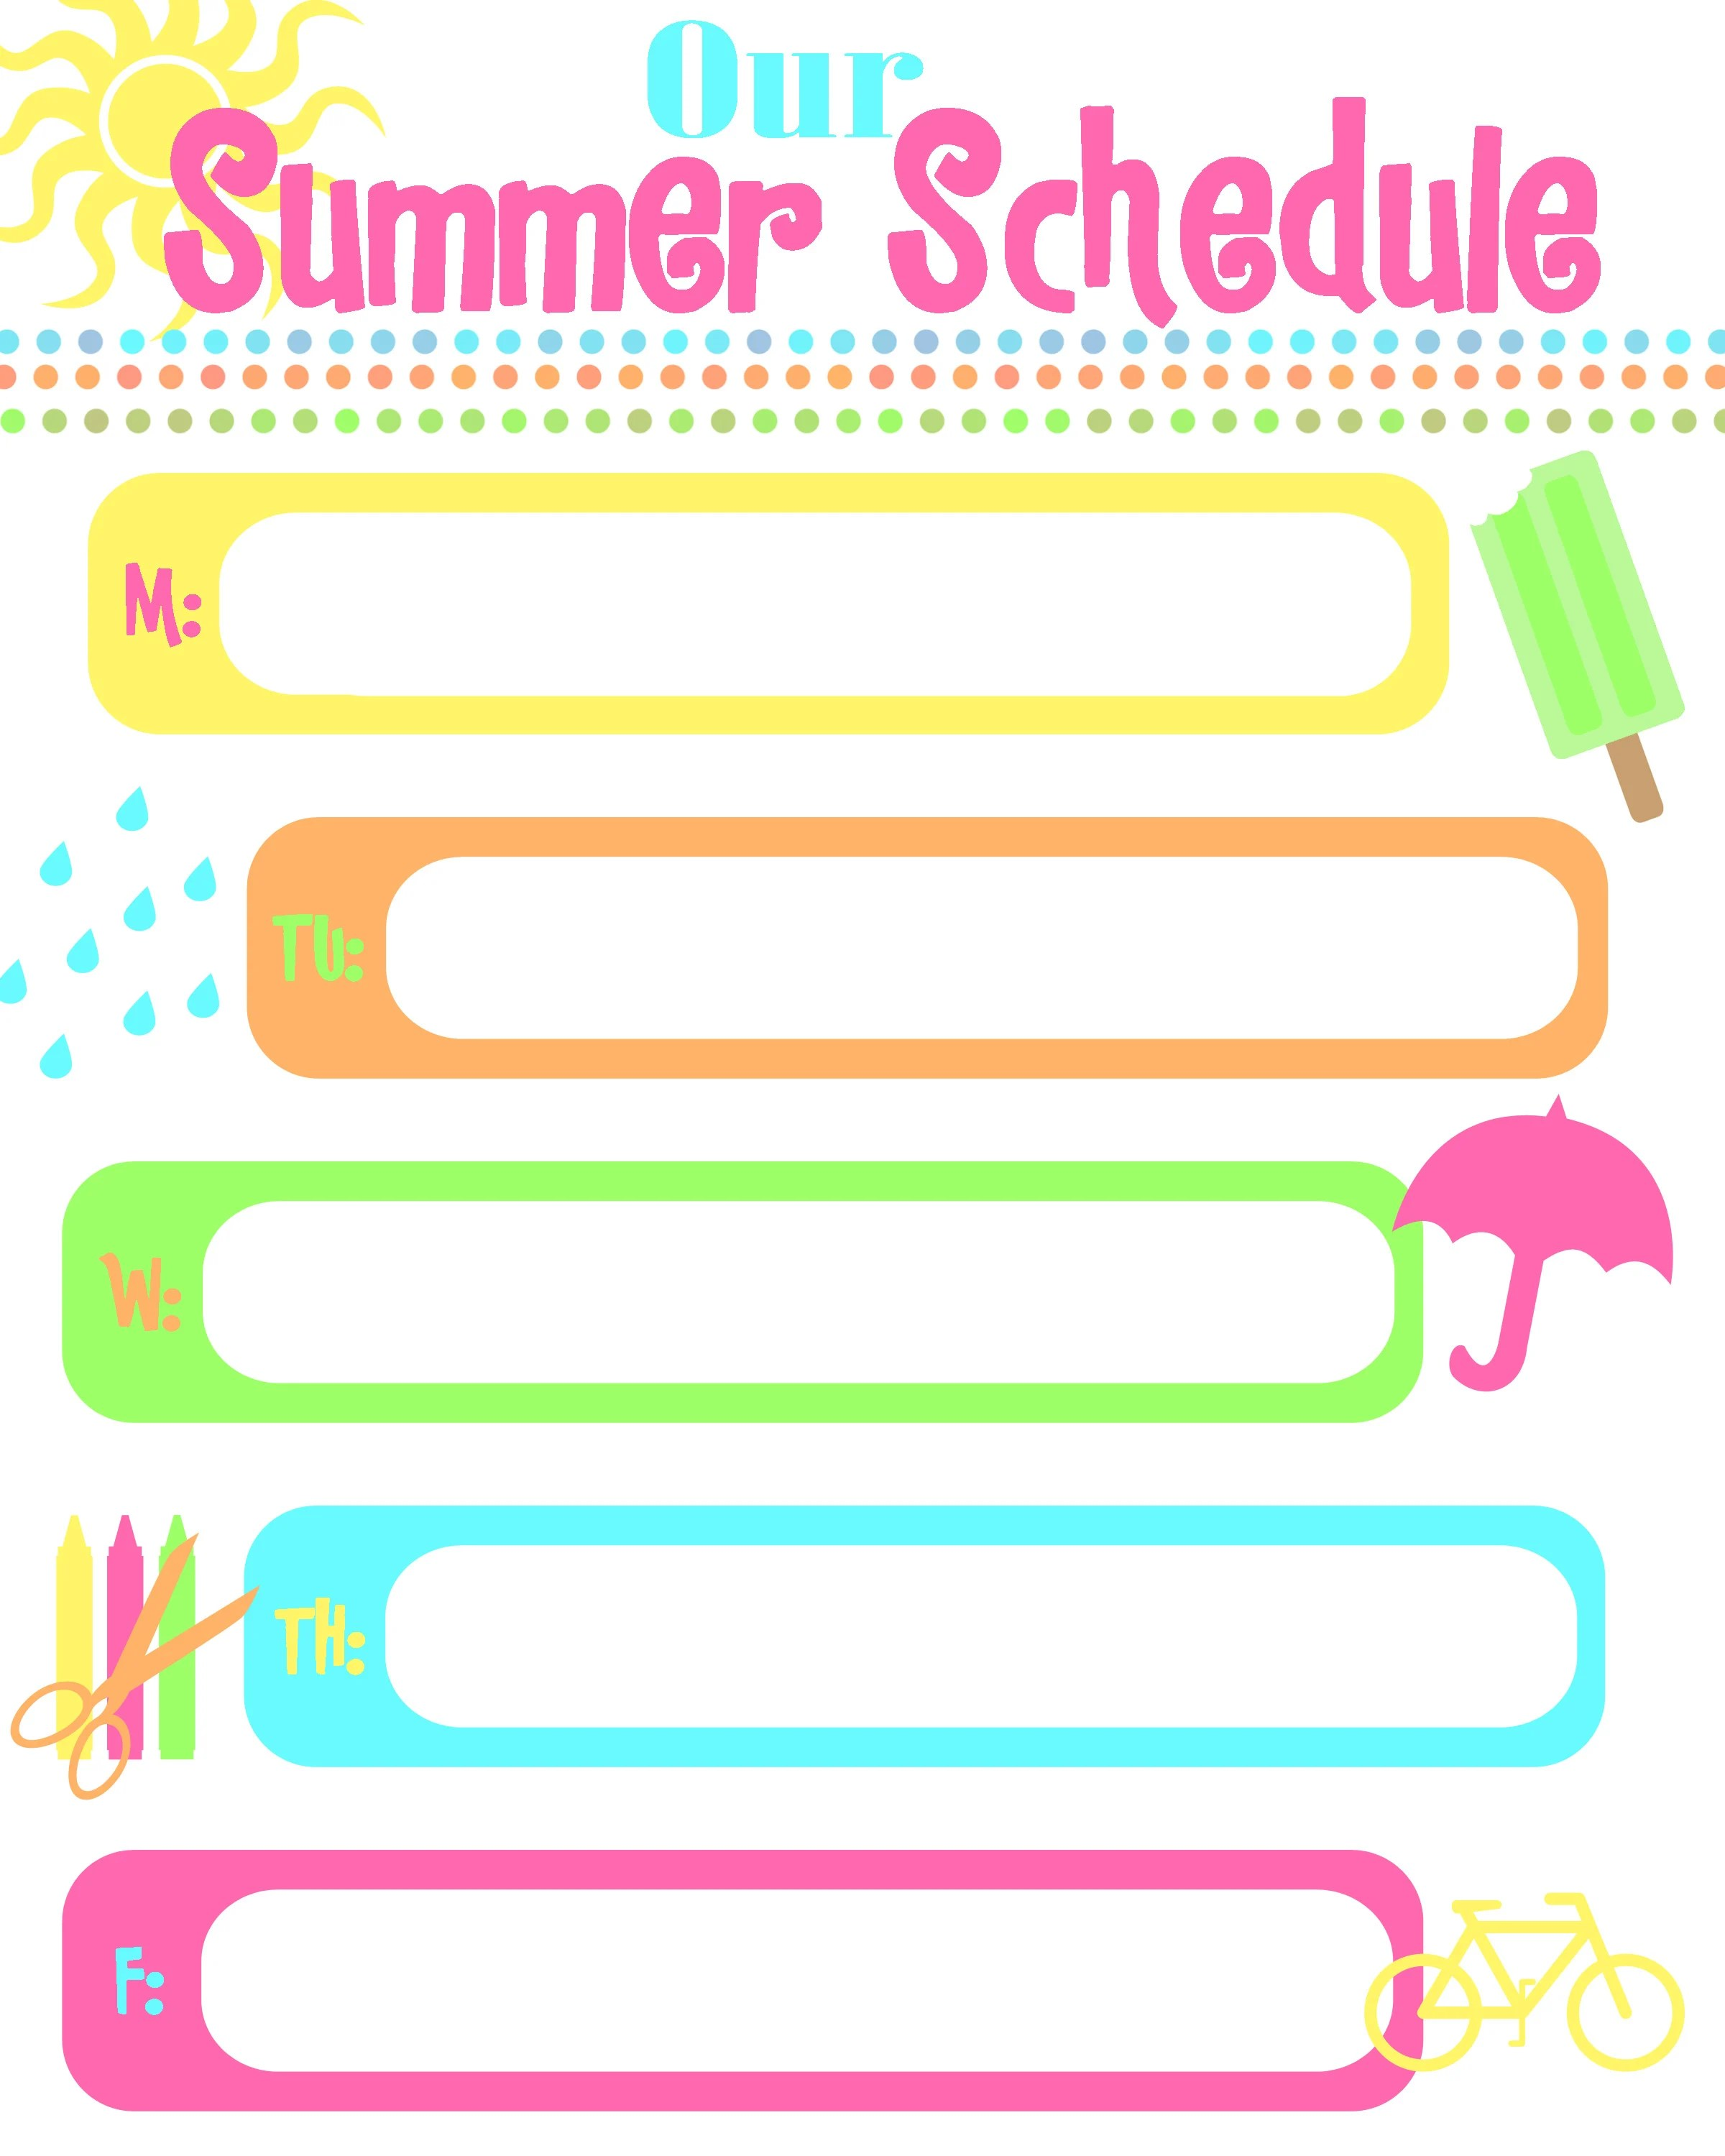 Summer Schedule How To Keep Kids Busy Free Printable